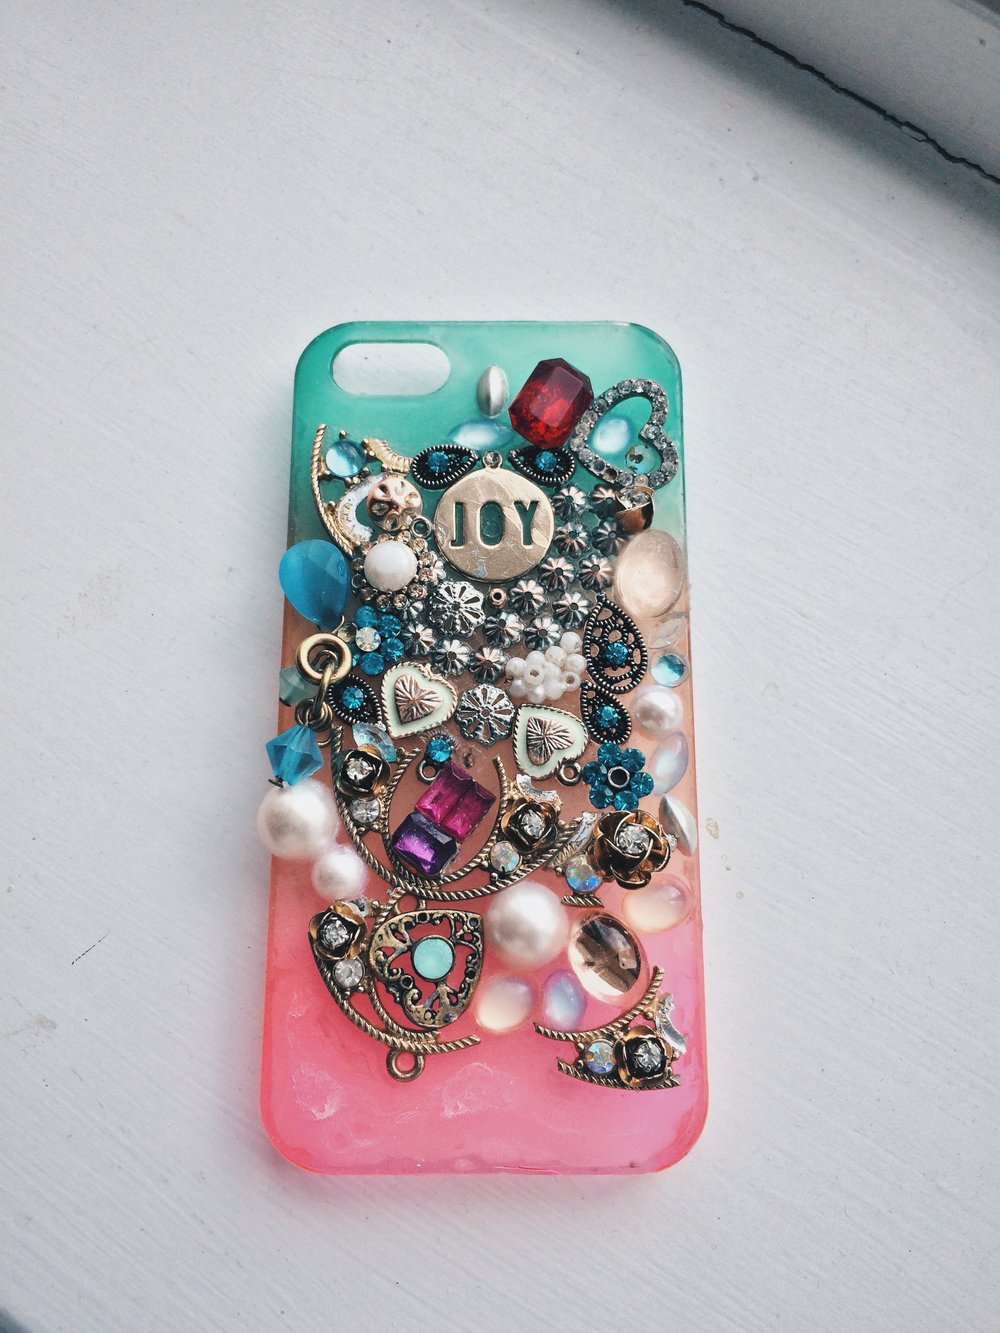 One of my hobbies is taking old jewellery to decorate my phone cases.